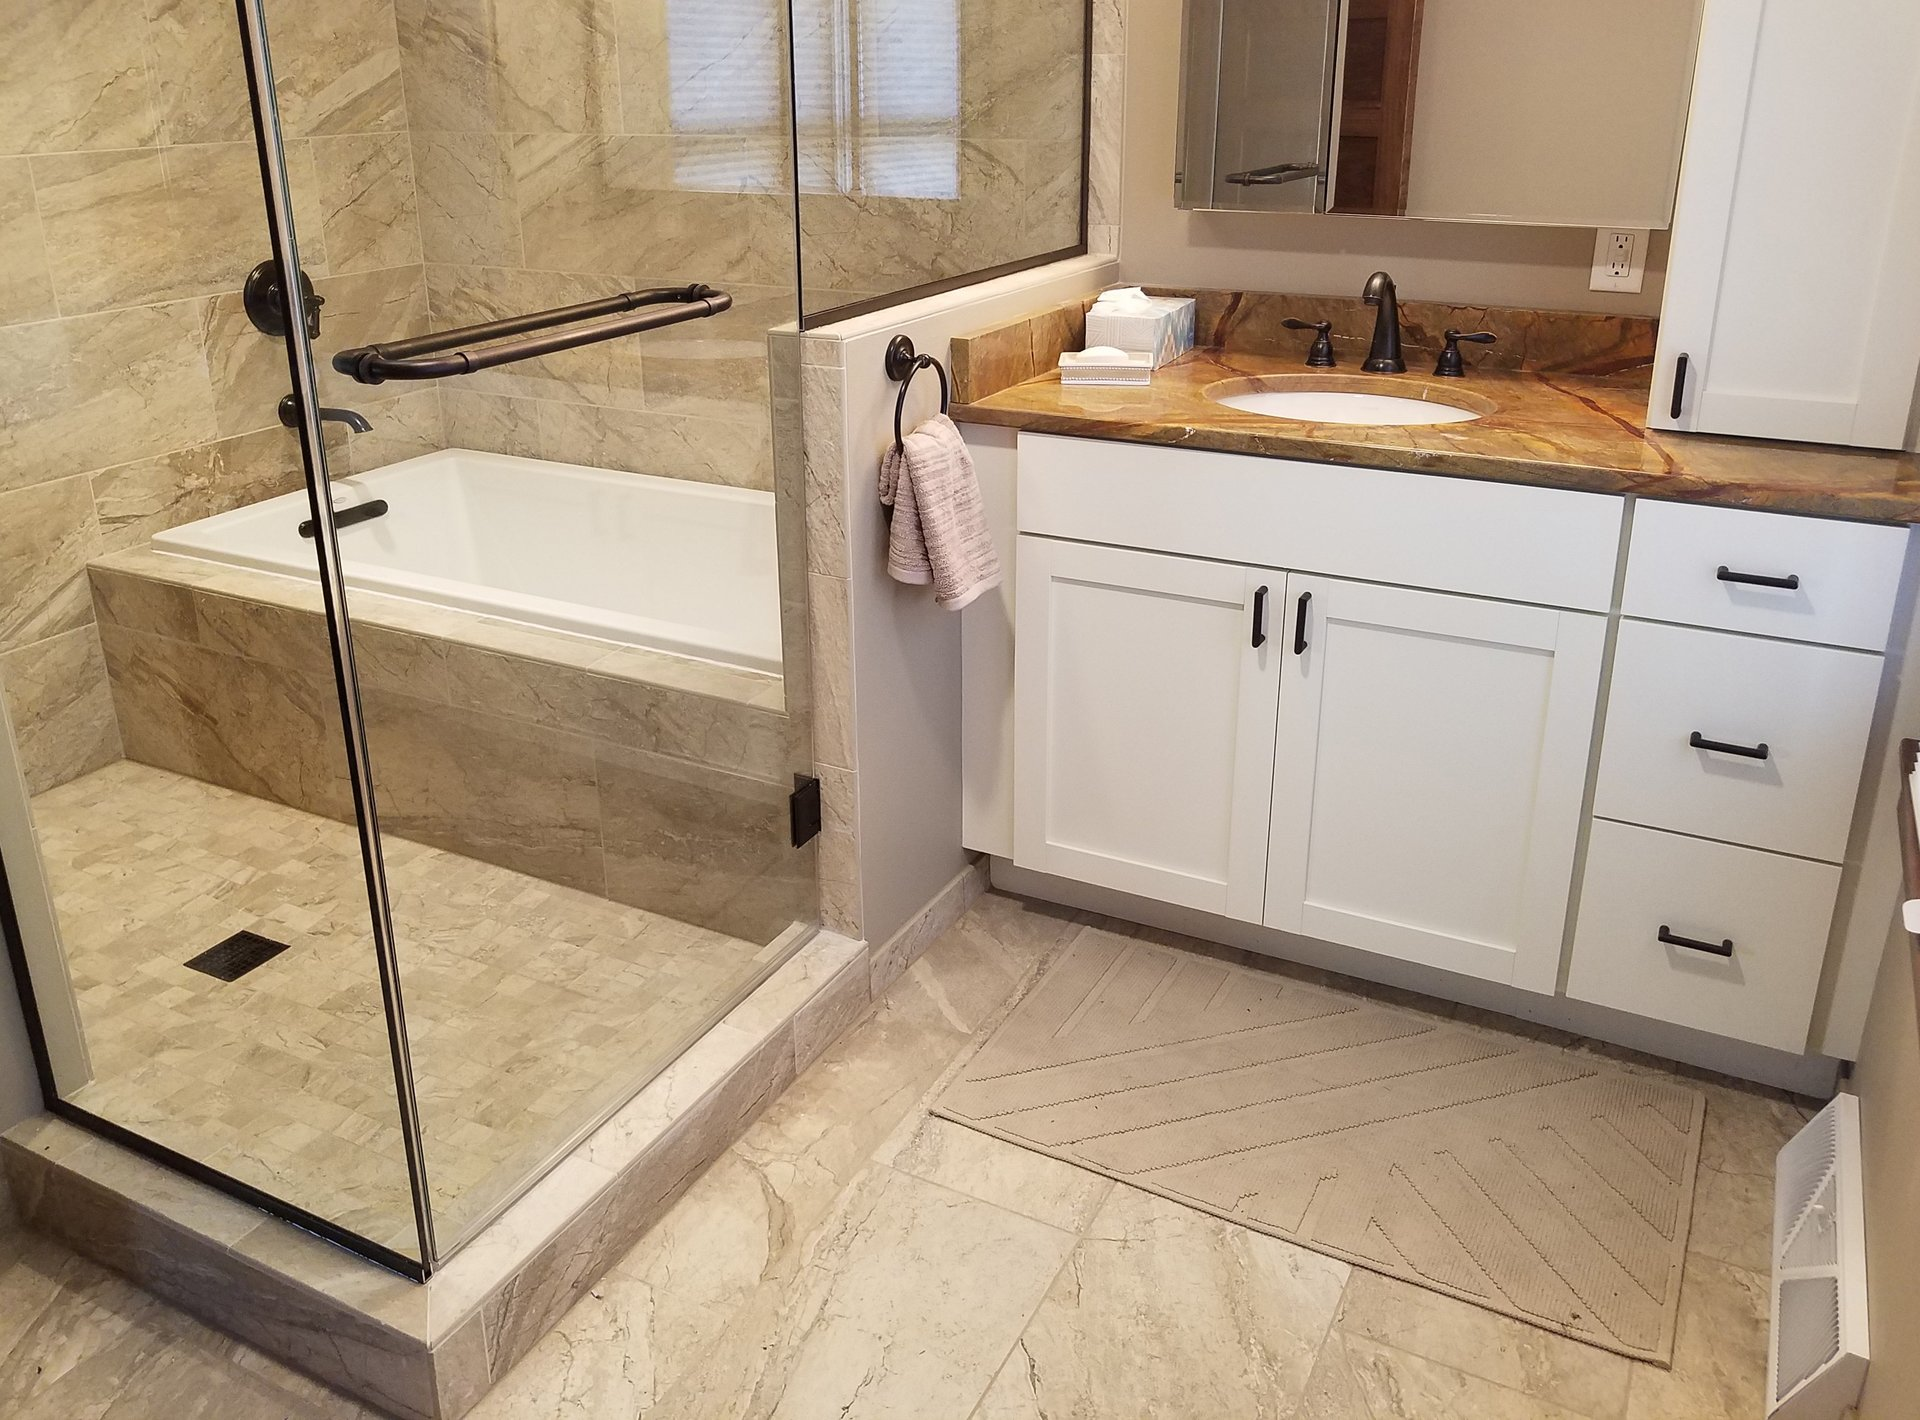 master bath remodel in madison, wi, beige bathroom tile, white shaker vanity, rainforest brown granite, frameless shower glass surround, tub and shower enclosure, separate tub and shower